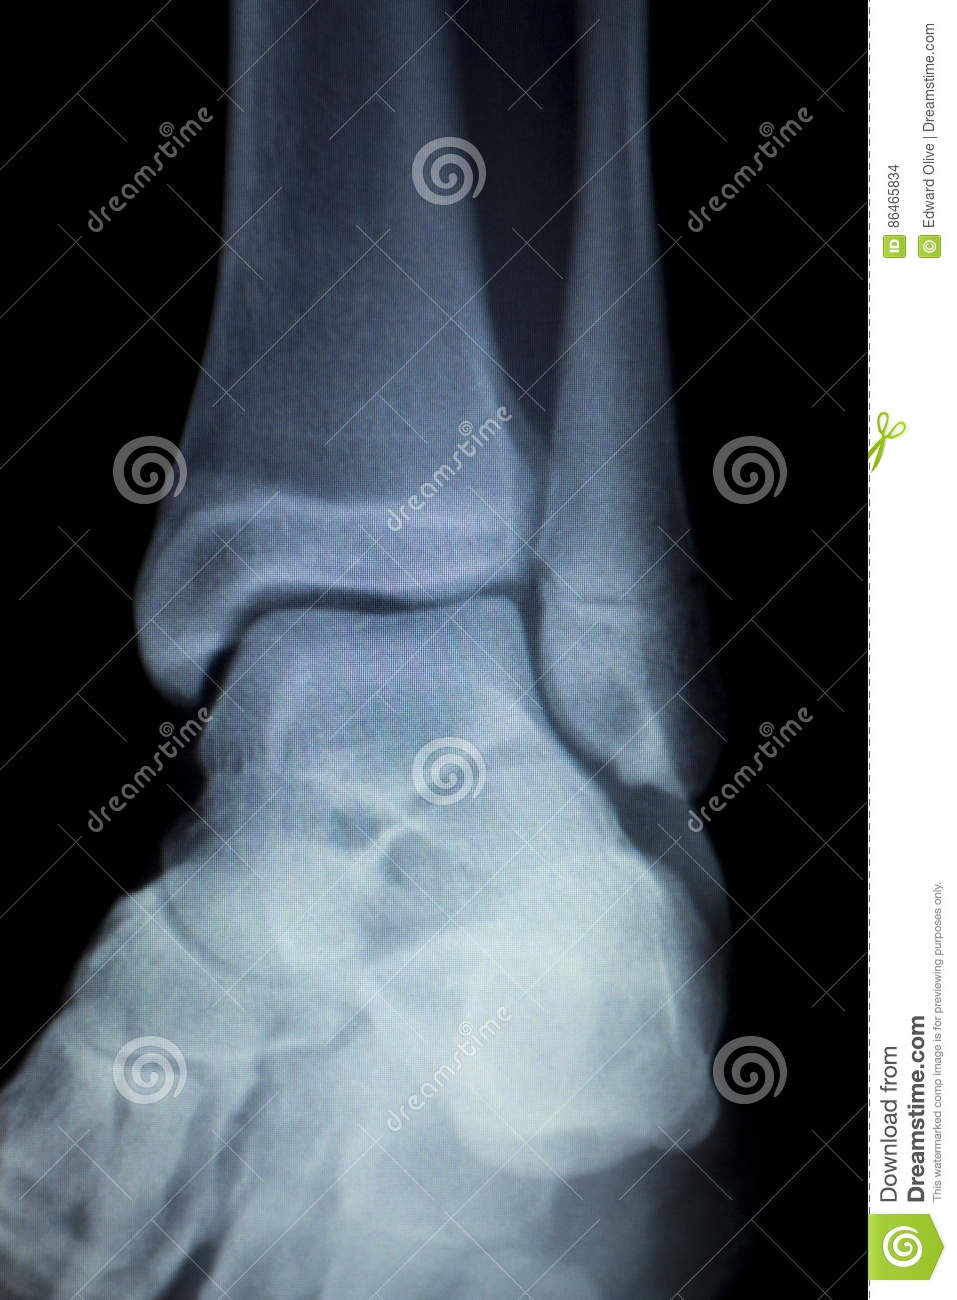 Xray foot heel ankle scan stock photo. Image of foot - 86465834